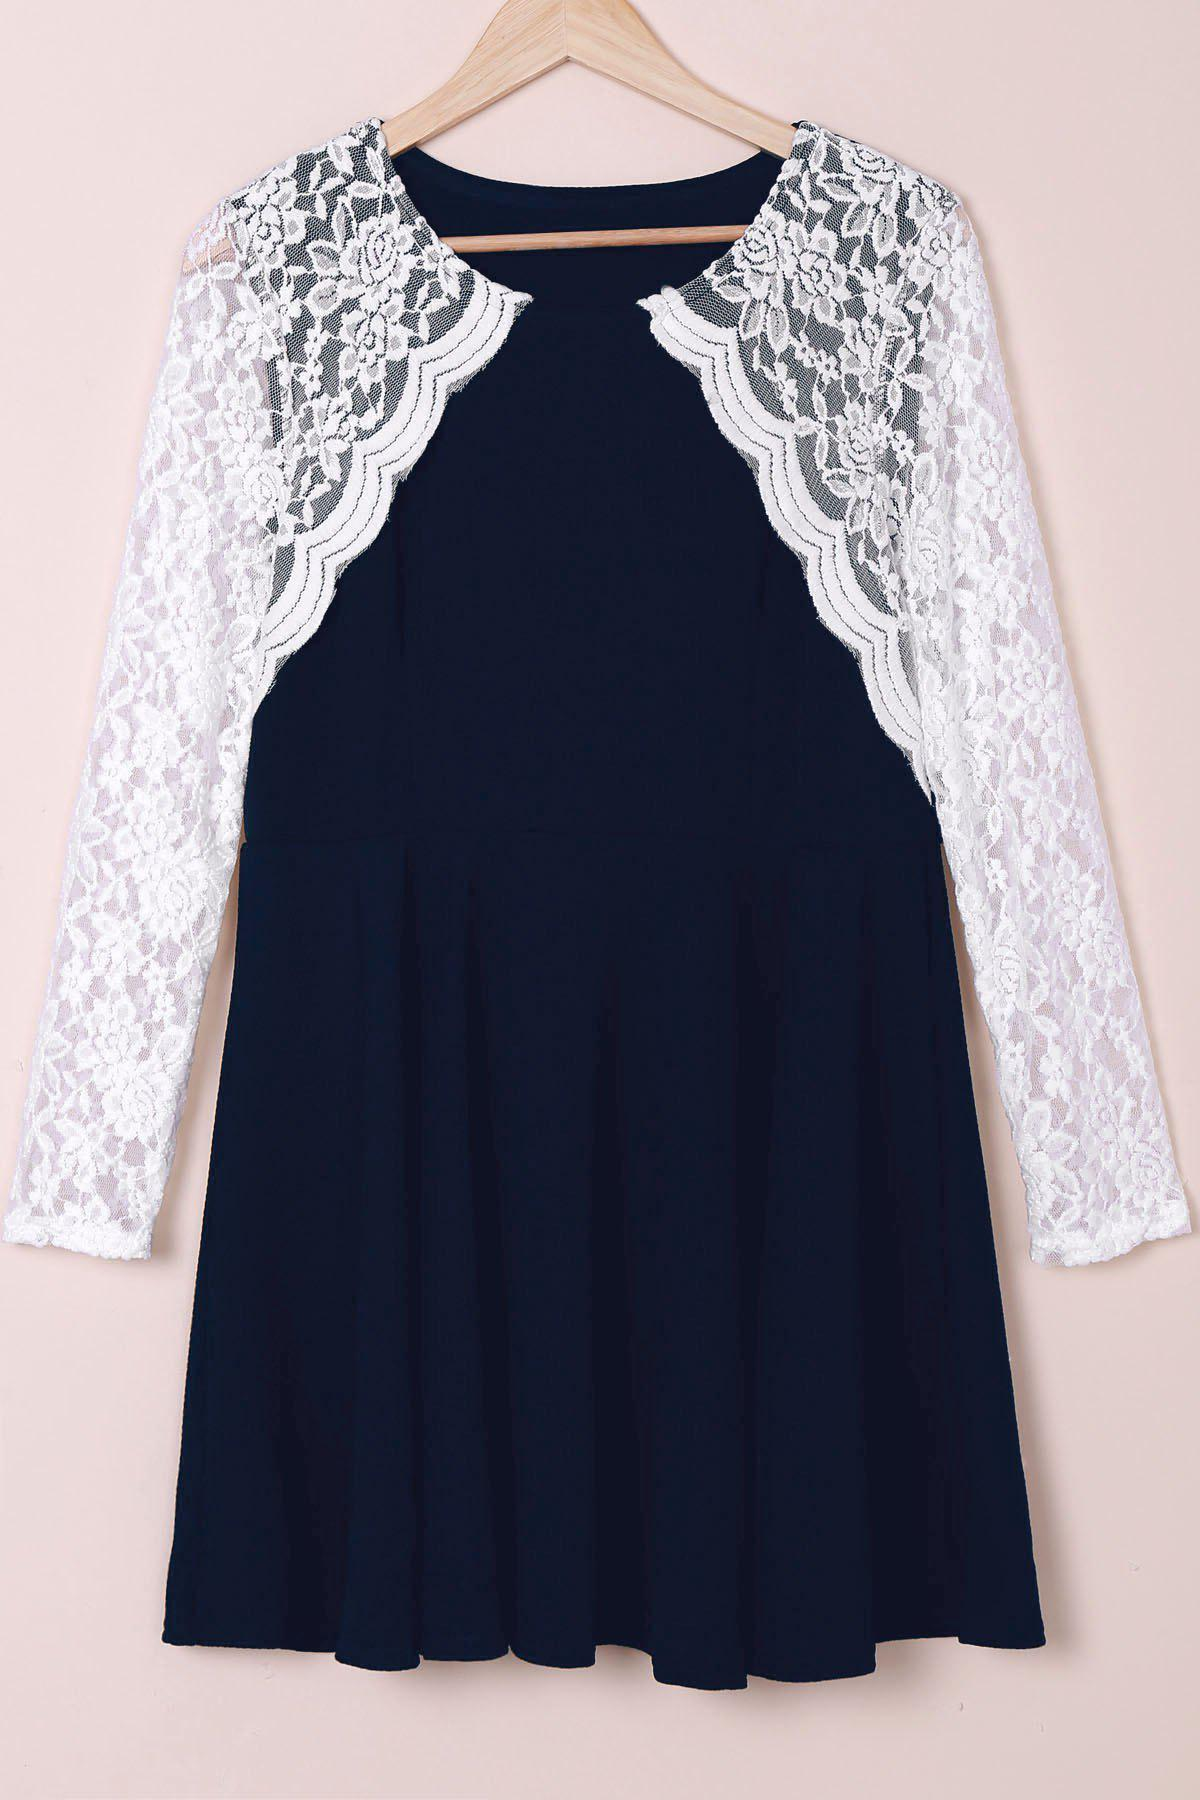 Shop Stylish Round Collar Lace Splicing Plus Size Long Sleeve Dress For Women